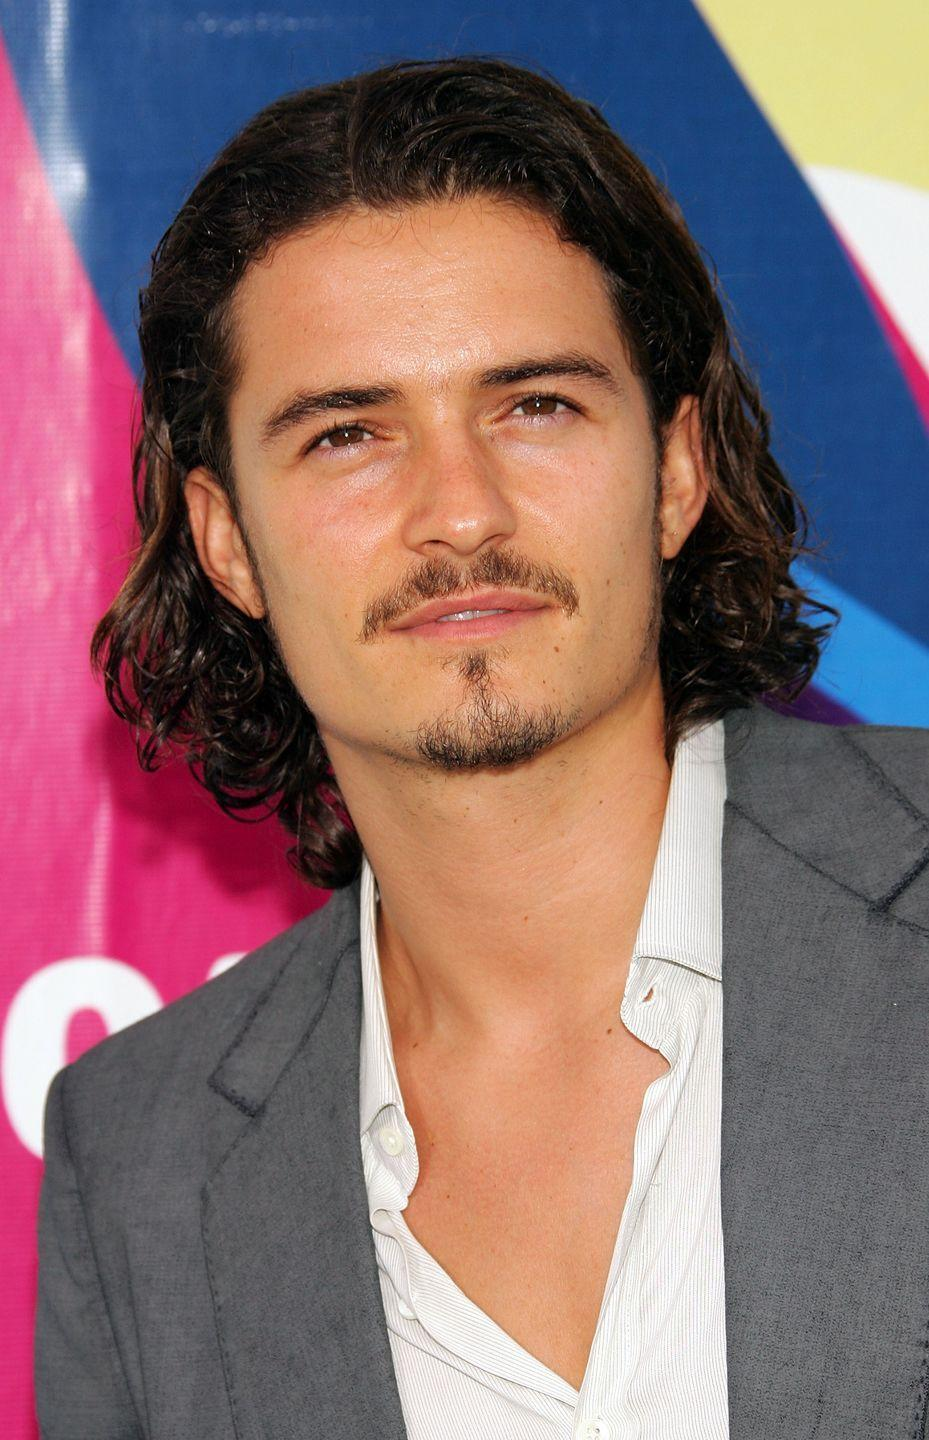 <p>Orlando Bloom gave audiences a sneak peak at him with longer hair in the <em>Lord of the Rings</em>, however this blonde 'd0 was a wig. In 2005 we saw the real deal when he grew his hair out for <em>Pirates of the Caribbean.</em></p>